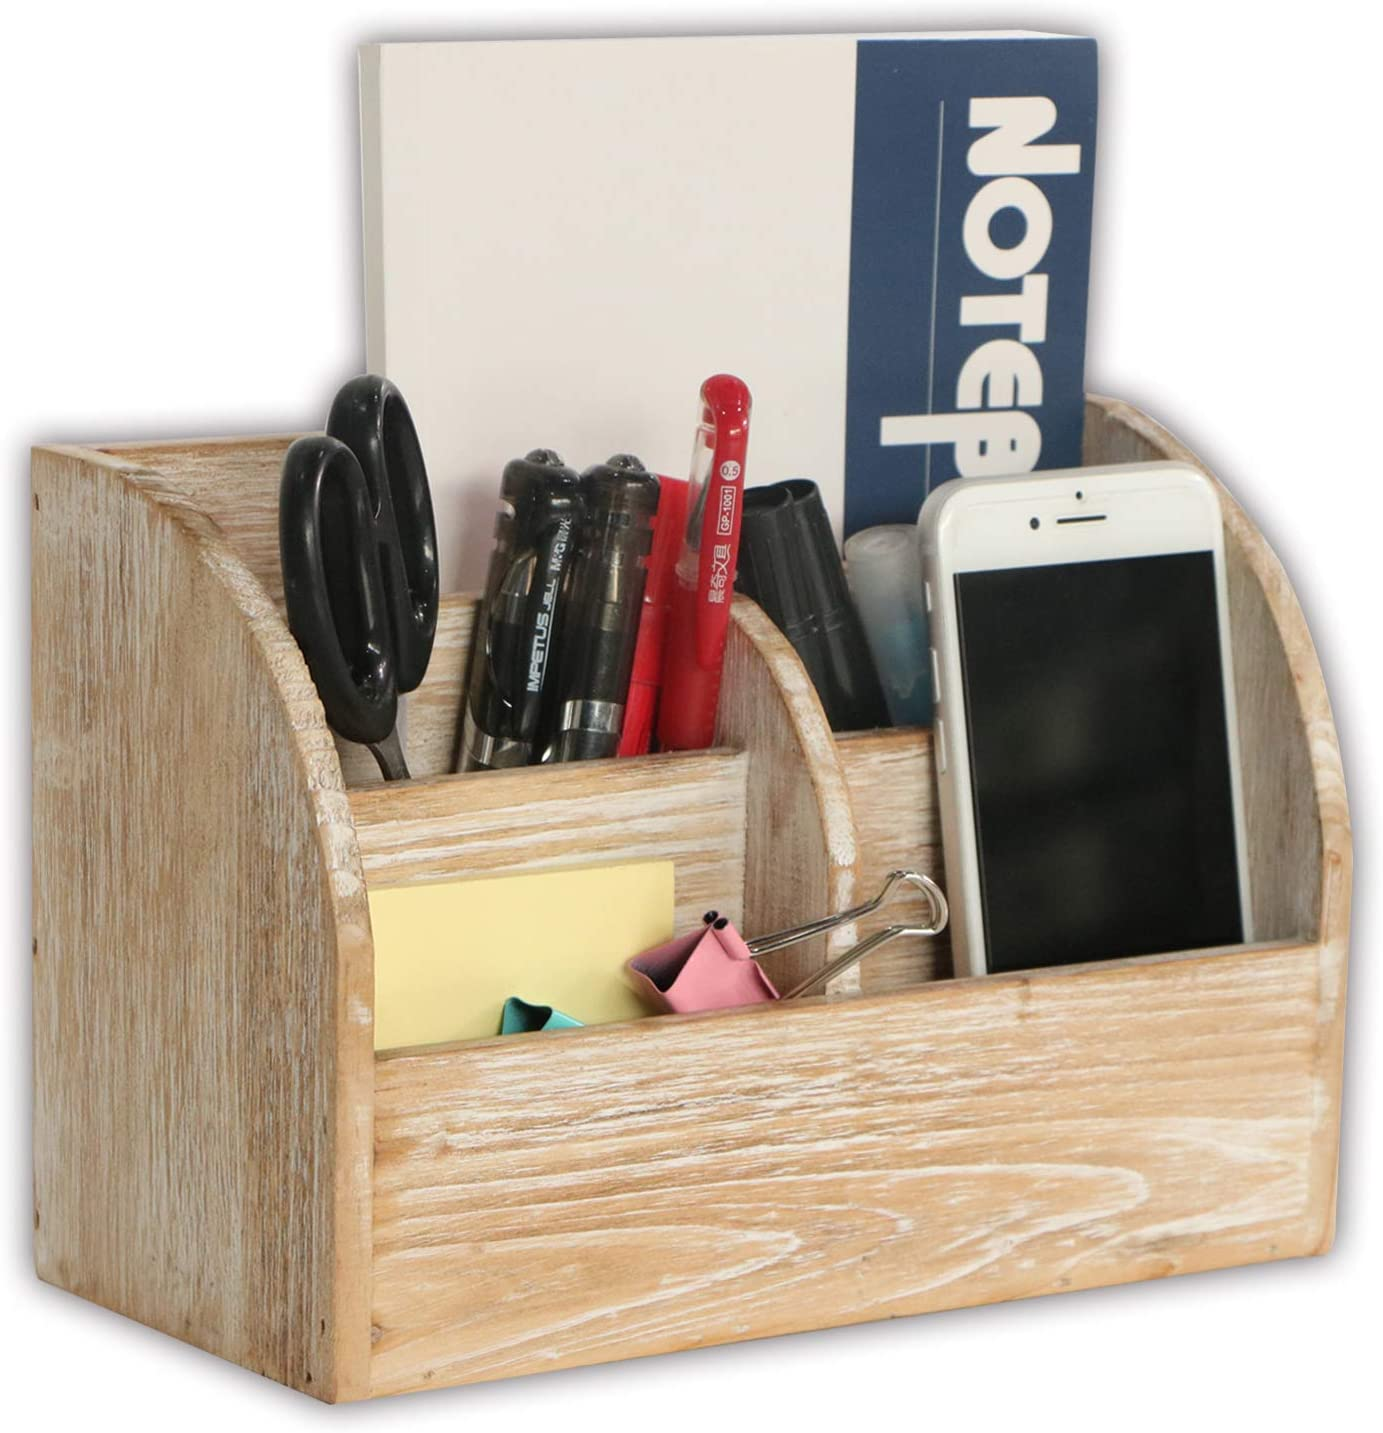 Emaison Wood Desk Organizer and Mail Sorter with 5 Compartments - for Home Office Supplies and Desktop Accessories – Nature